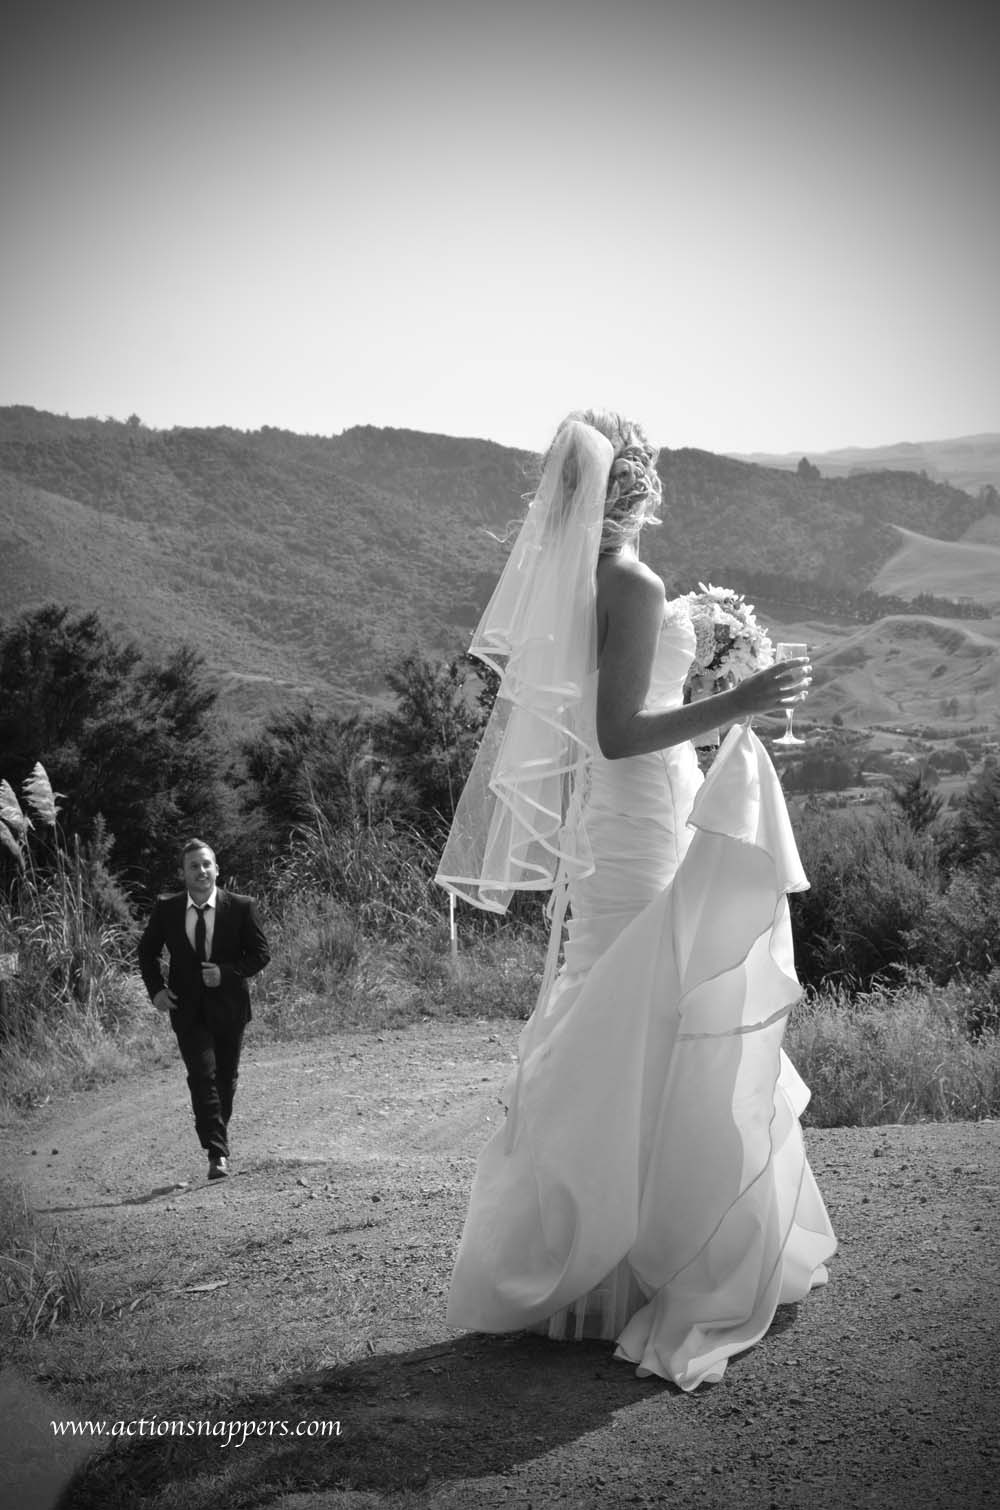 Groom chasing after bride by actionsnappers wedding photographer